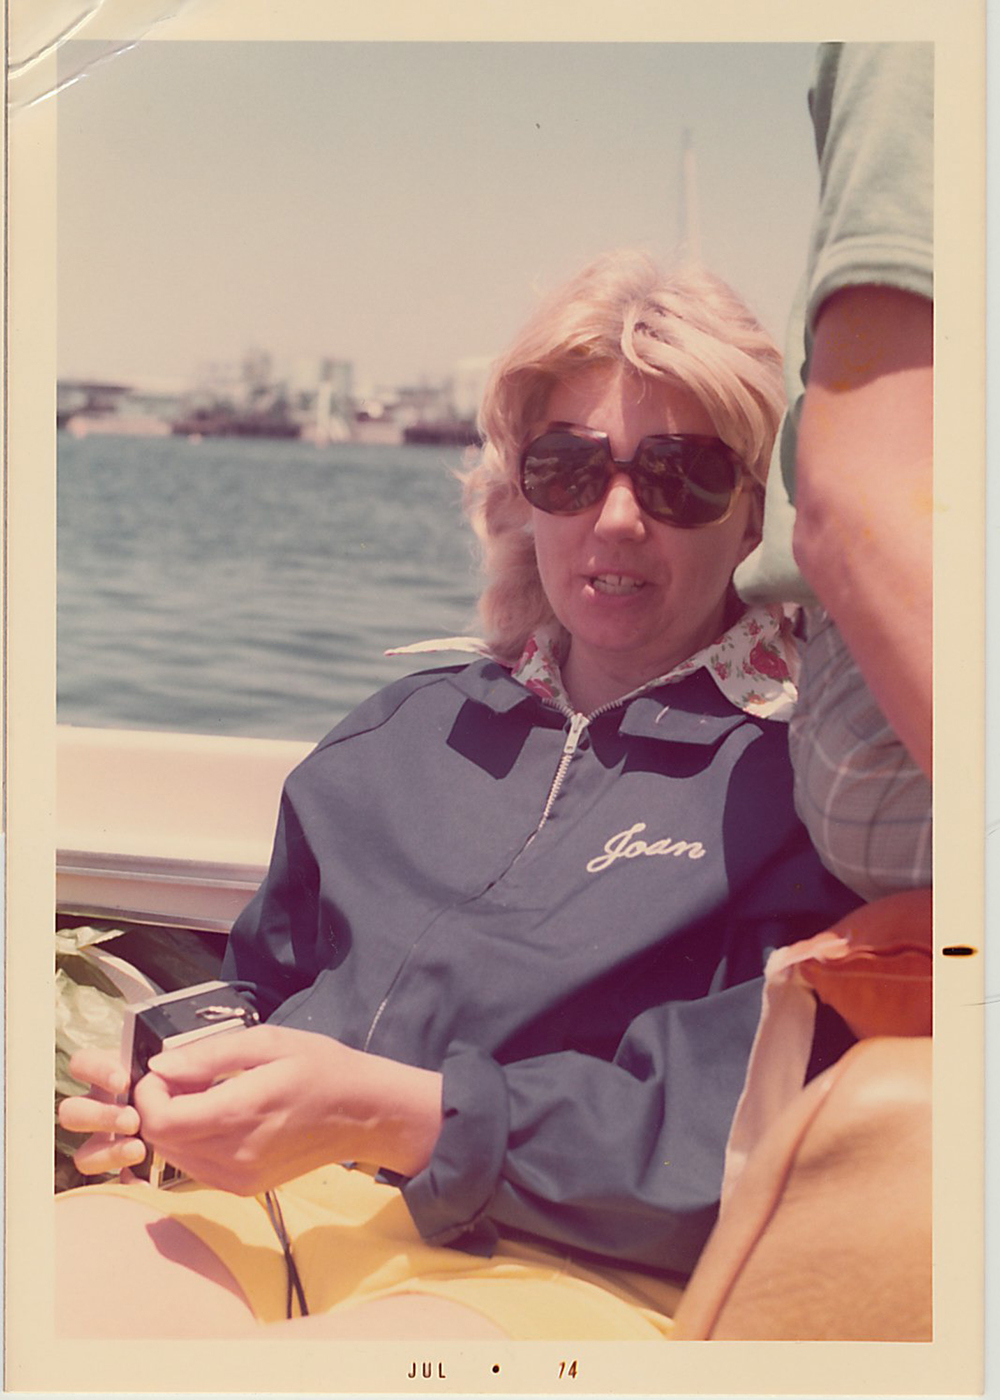 Joan wearing her boating jacket and holding a camera.